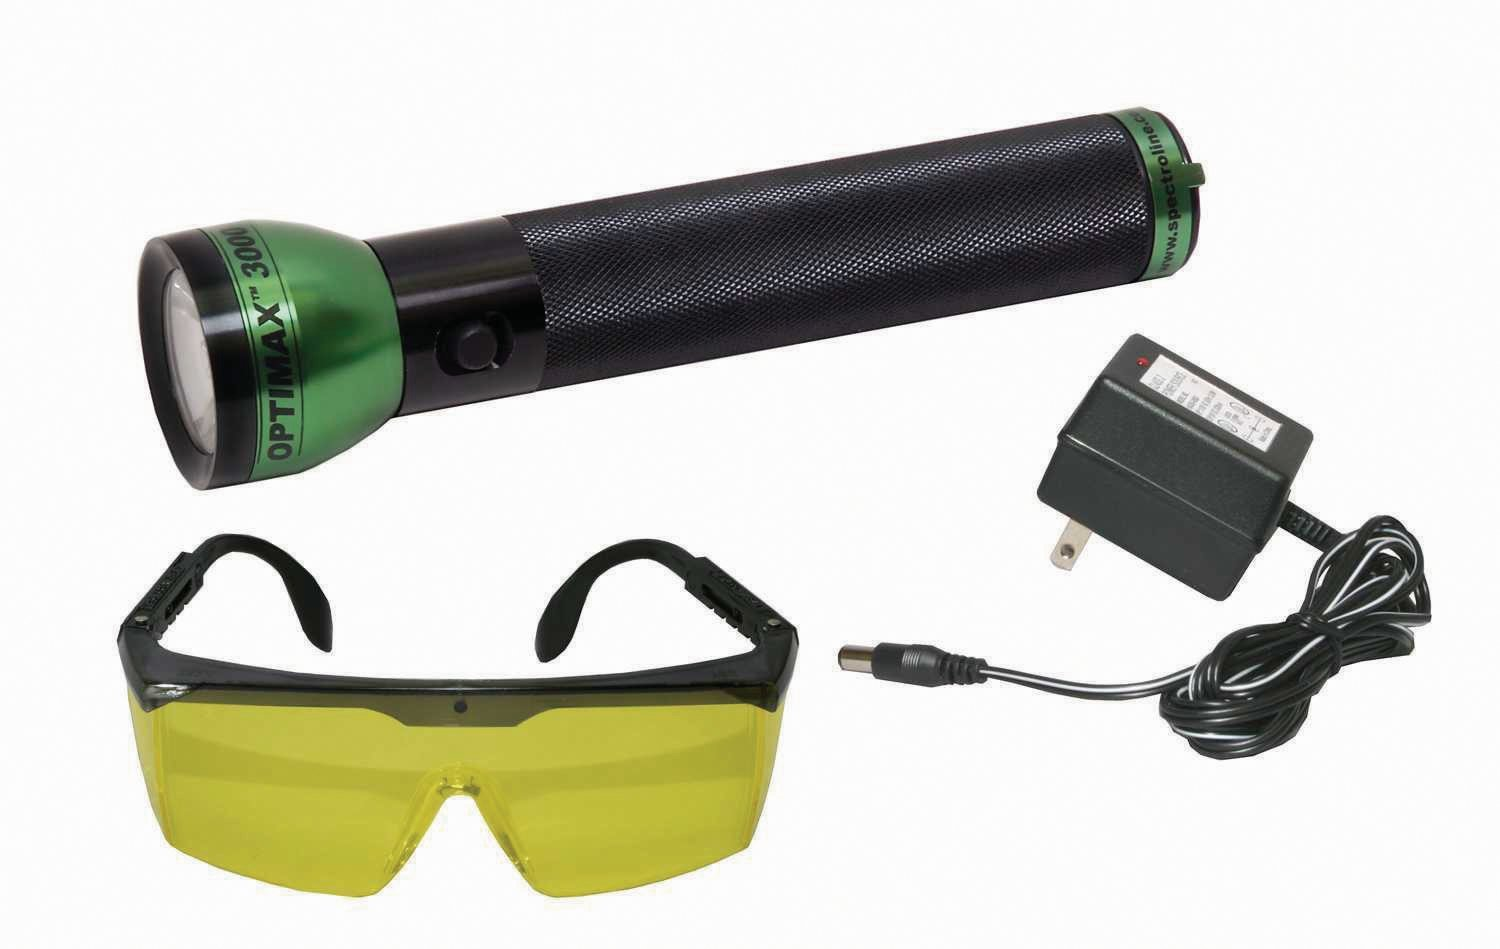 Spectronics Corp/Tracer TP8690 Optimax 3000 Cordless Leak Detection Flashlight